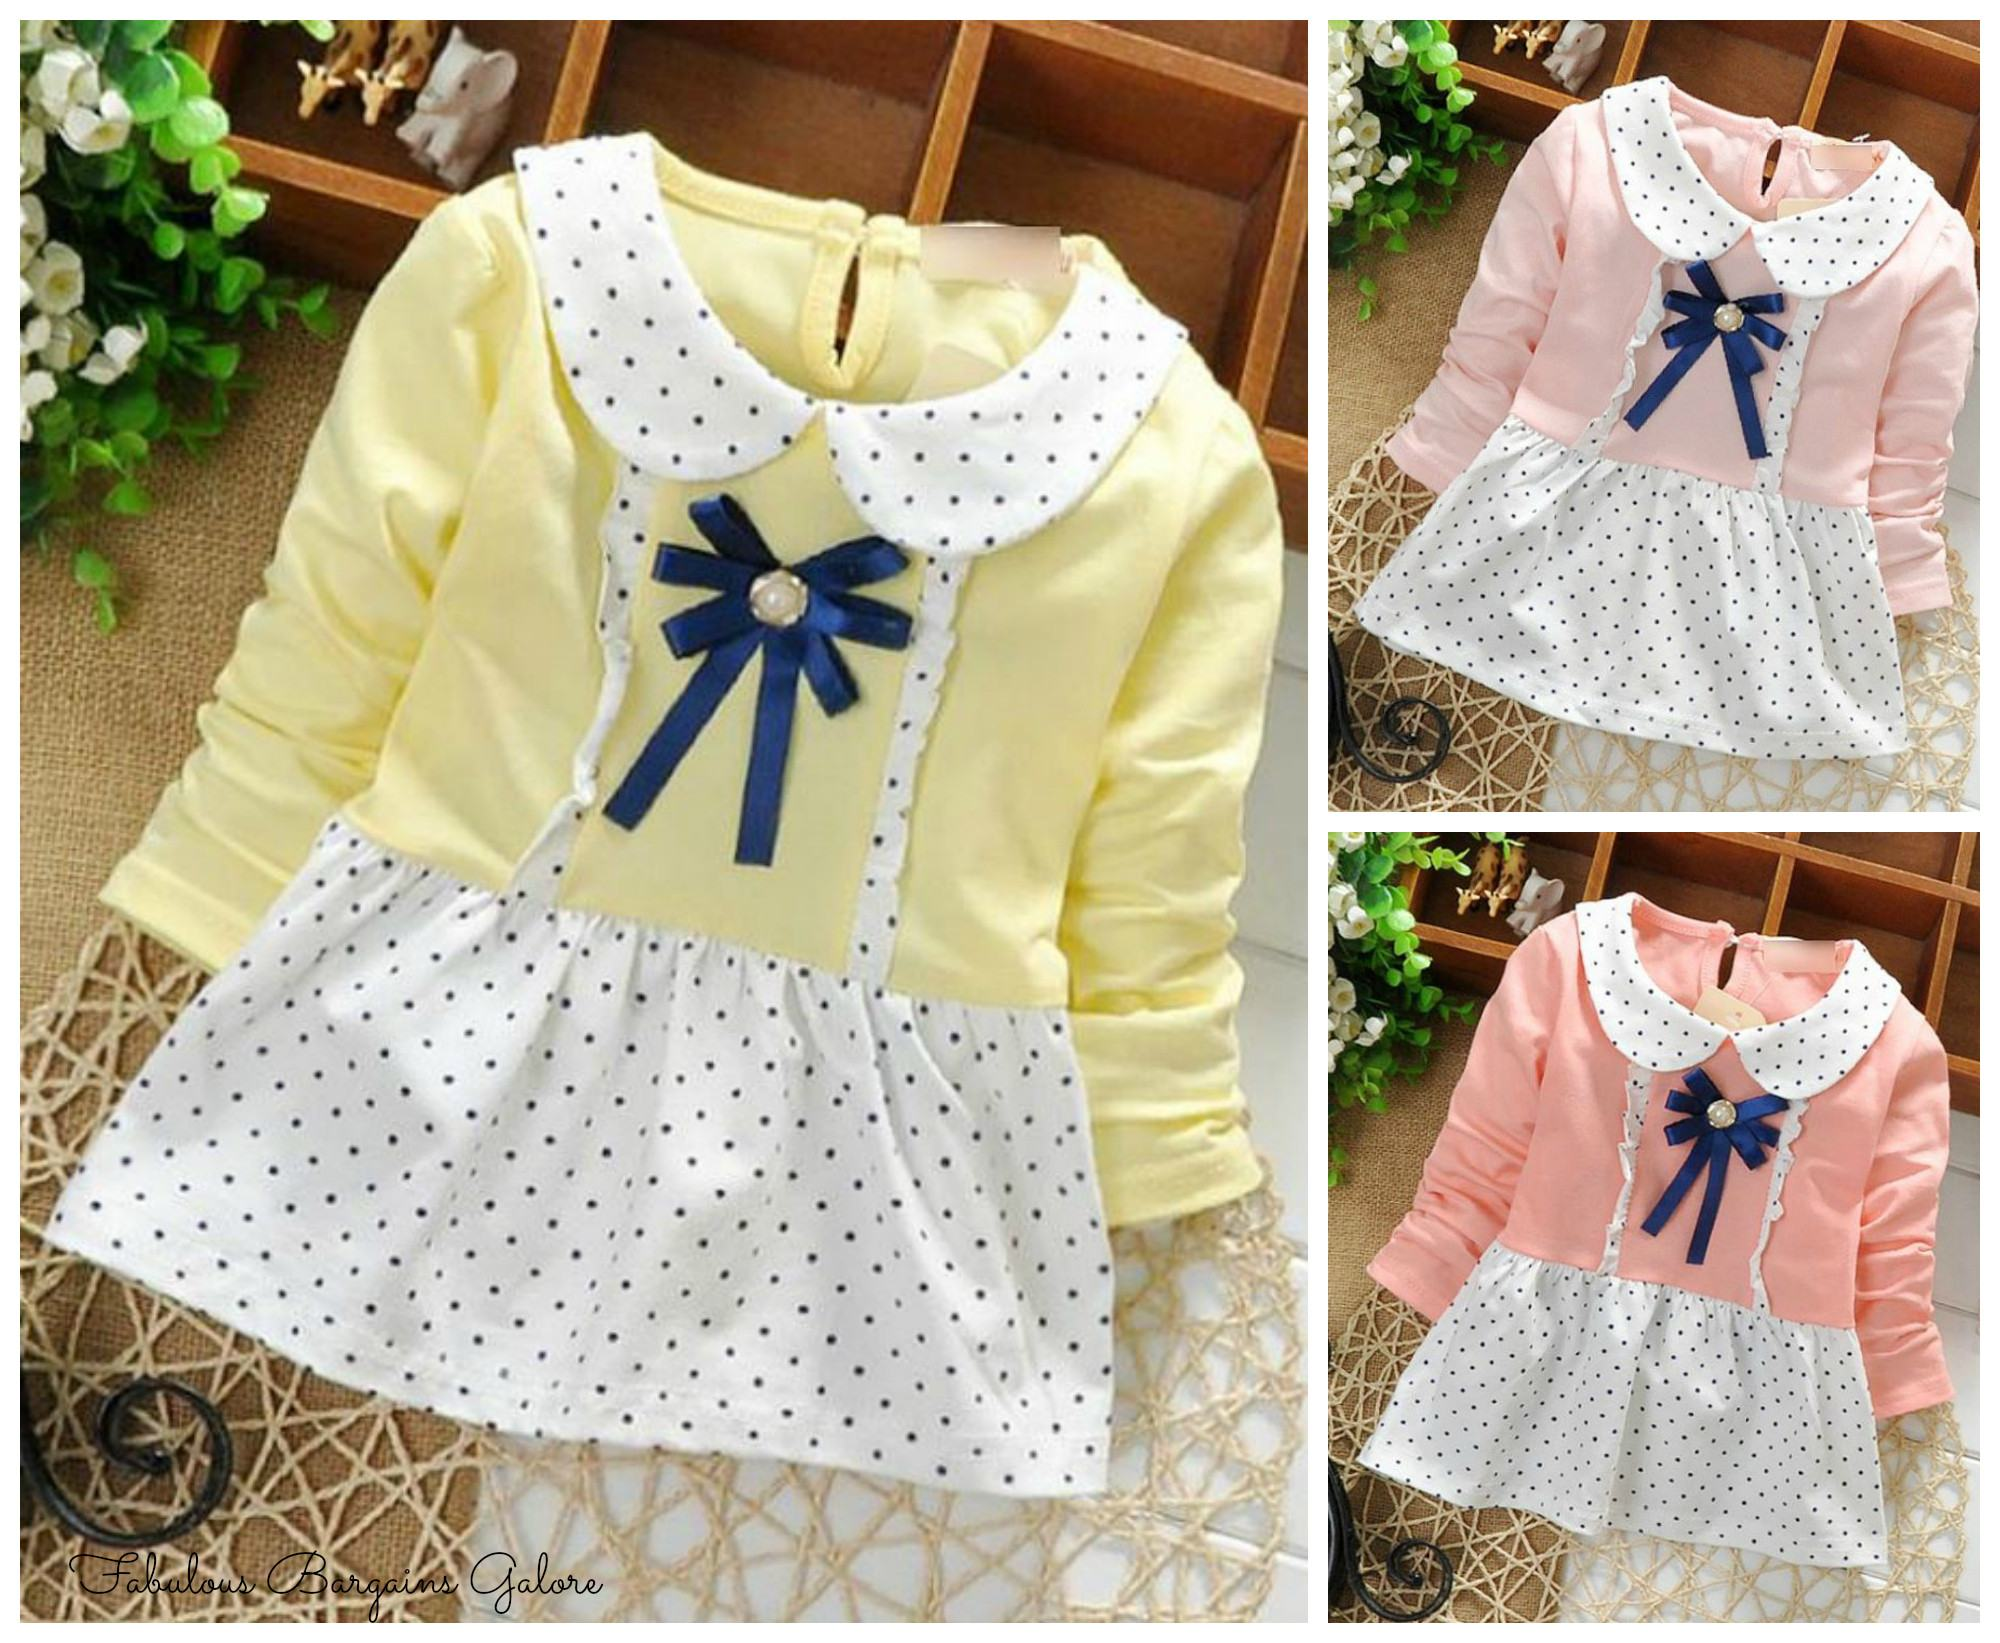 Cute Polka Dot Baby Summer Dress